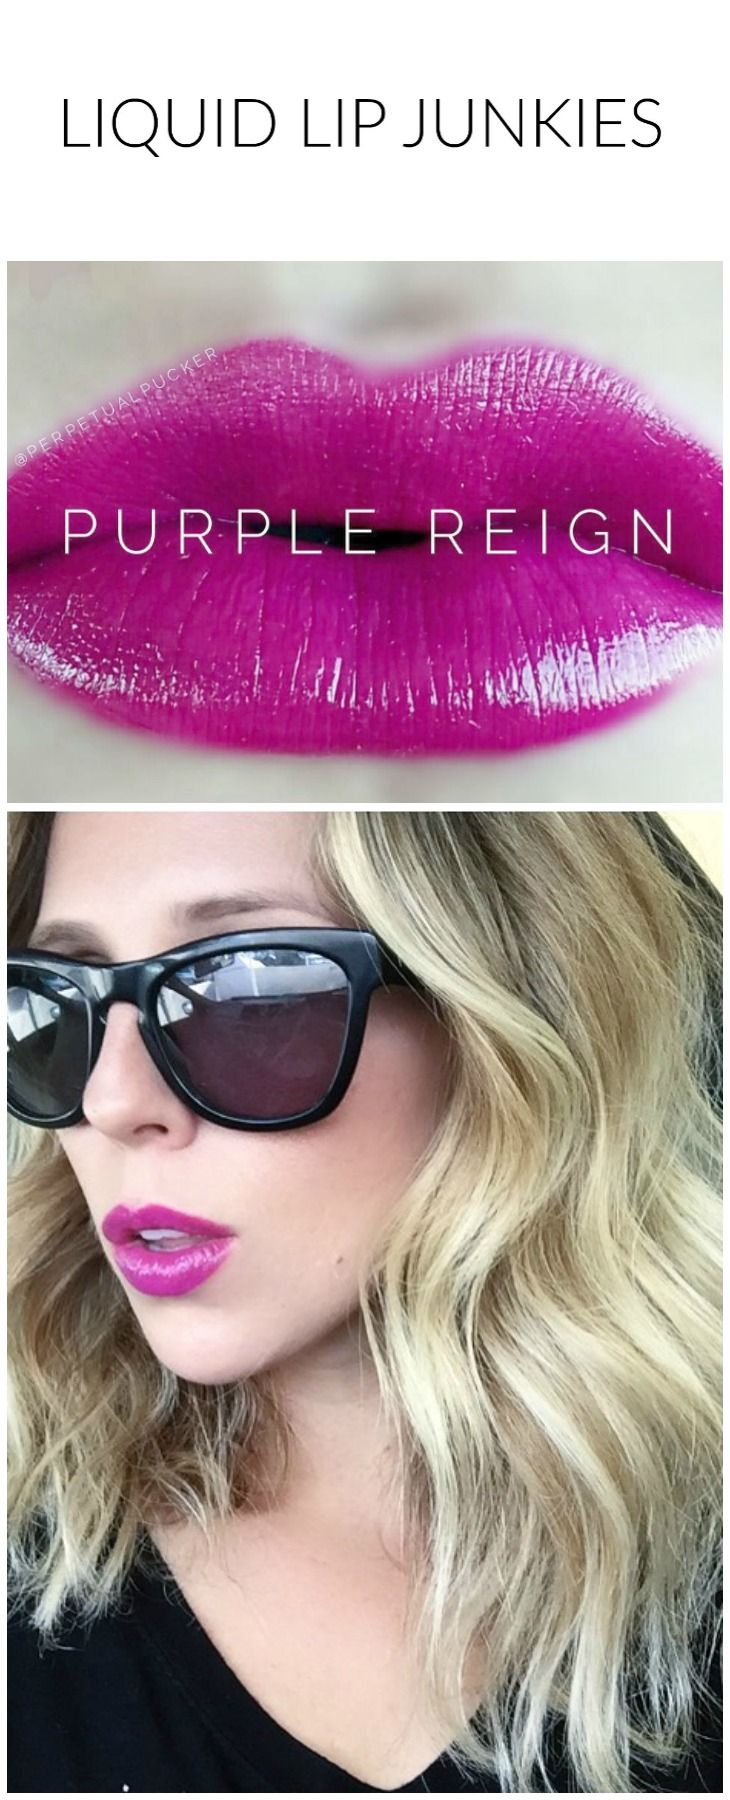 Purple Reign LipSense Video Application